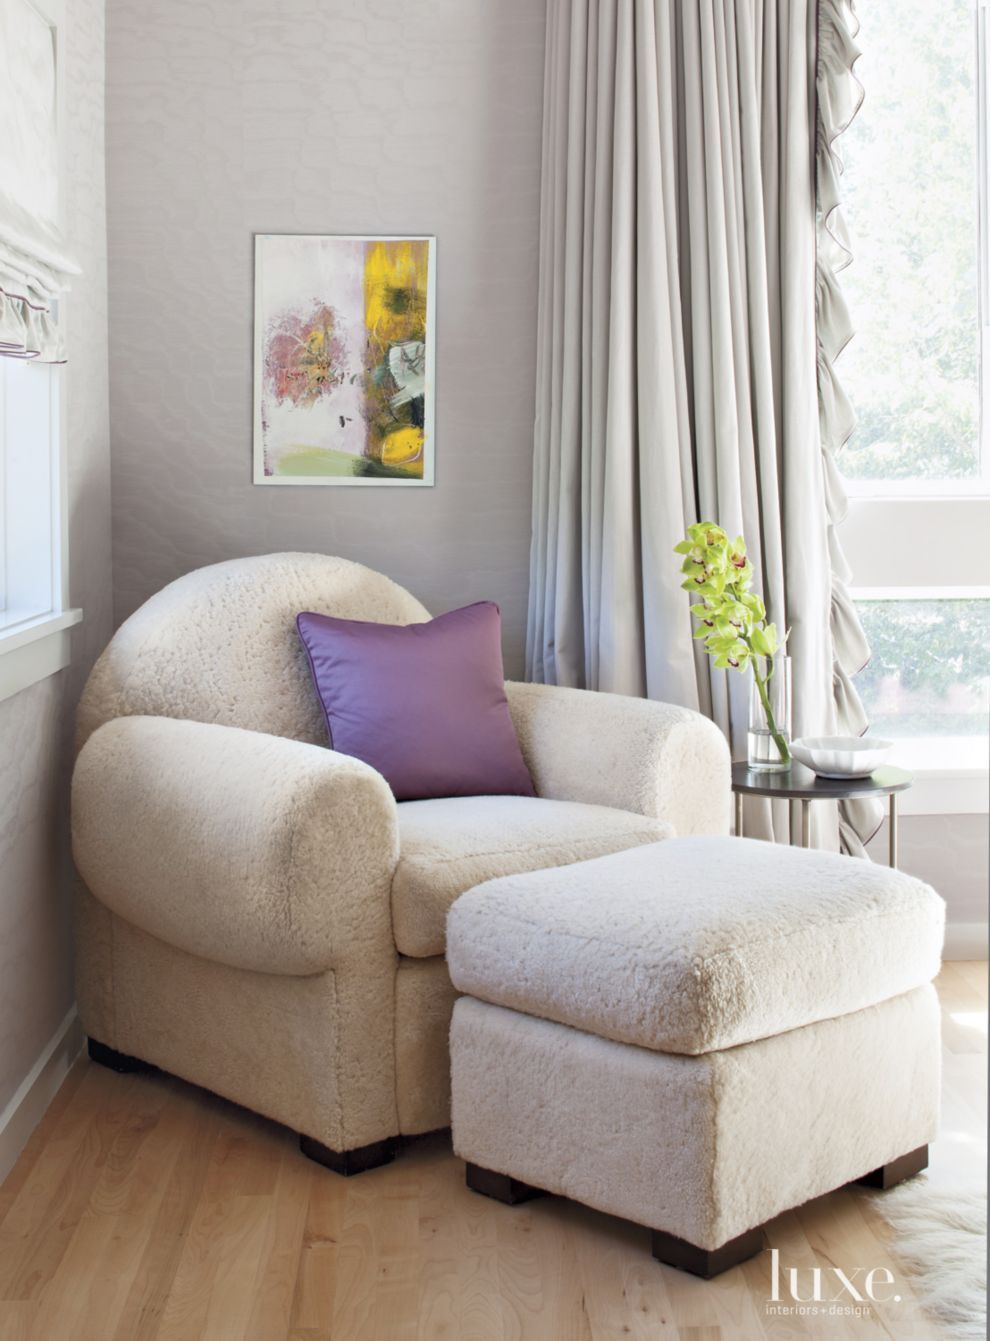 50 Stylish Rooms with Cozy Reading Nooks Accent chairs